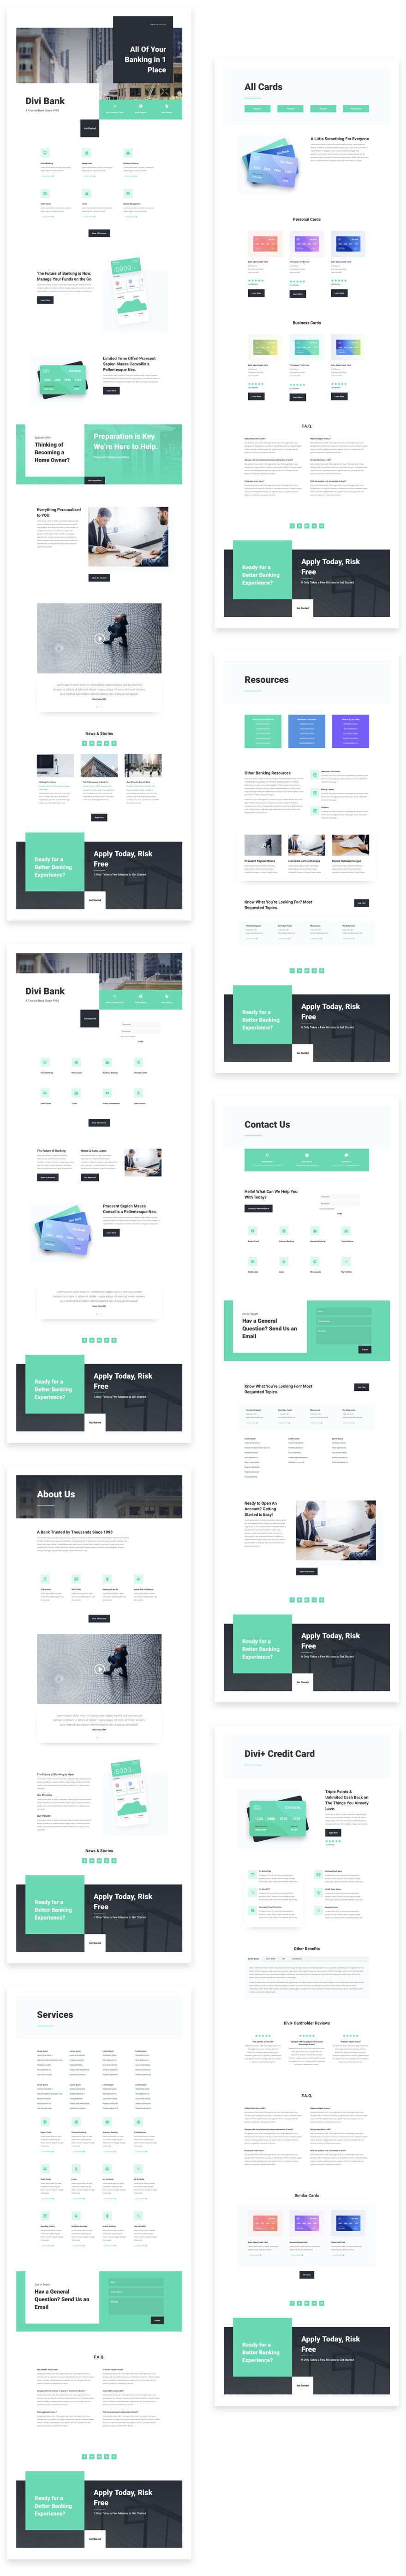 Divi Bank Layout Pack